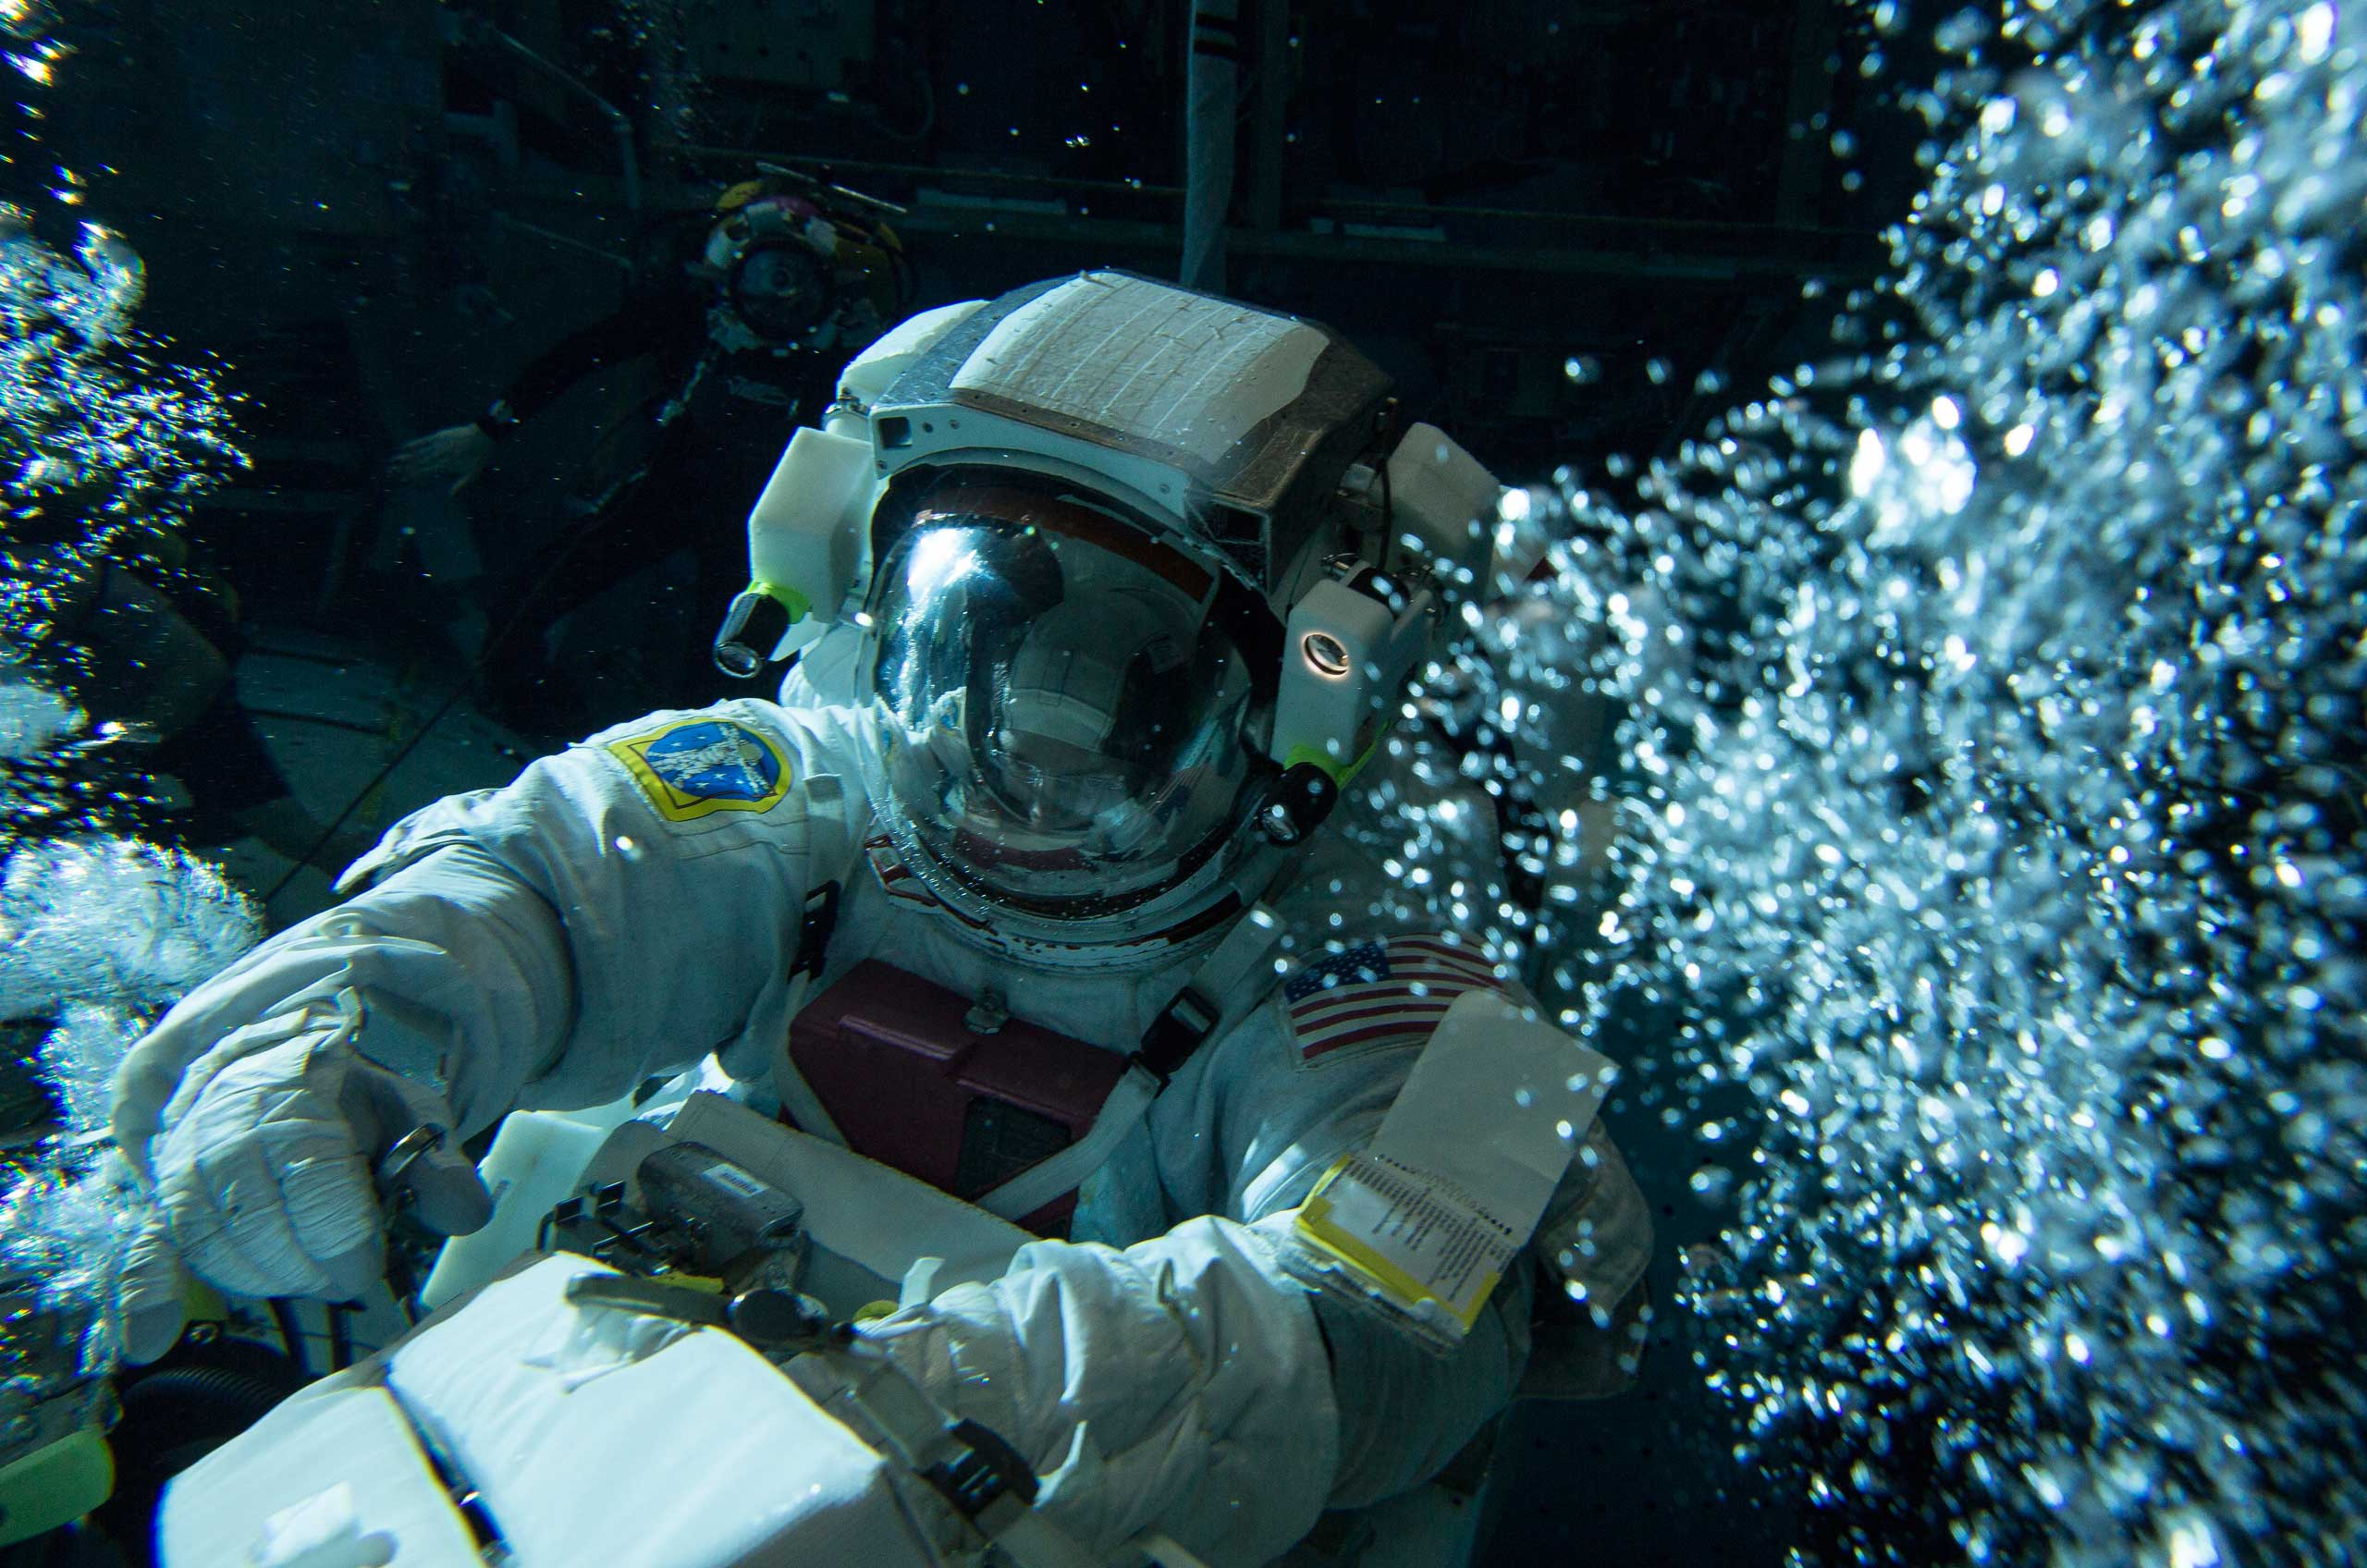 Scott Kelly completes underwater training for his first ever spacewalk on Feb. 2, in Houston, Texas.